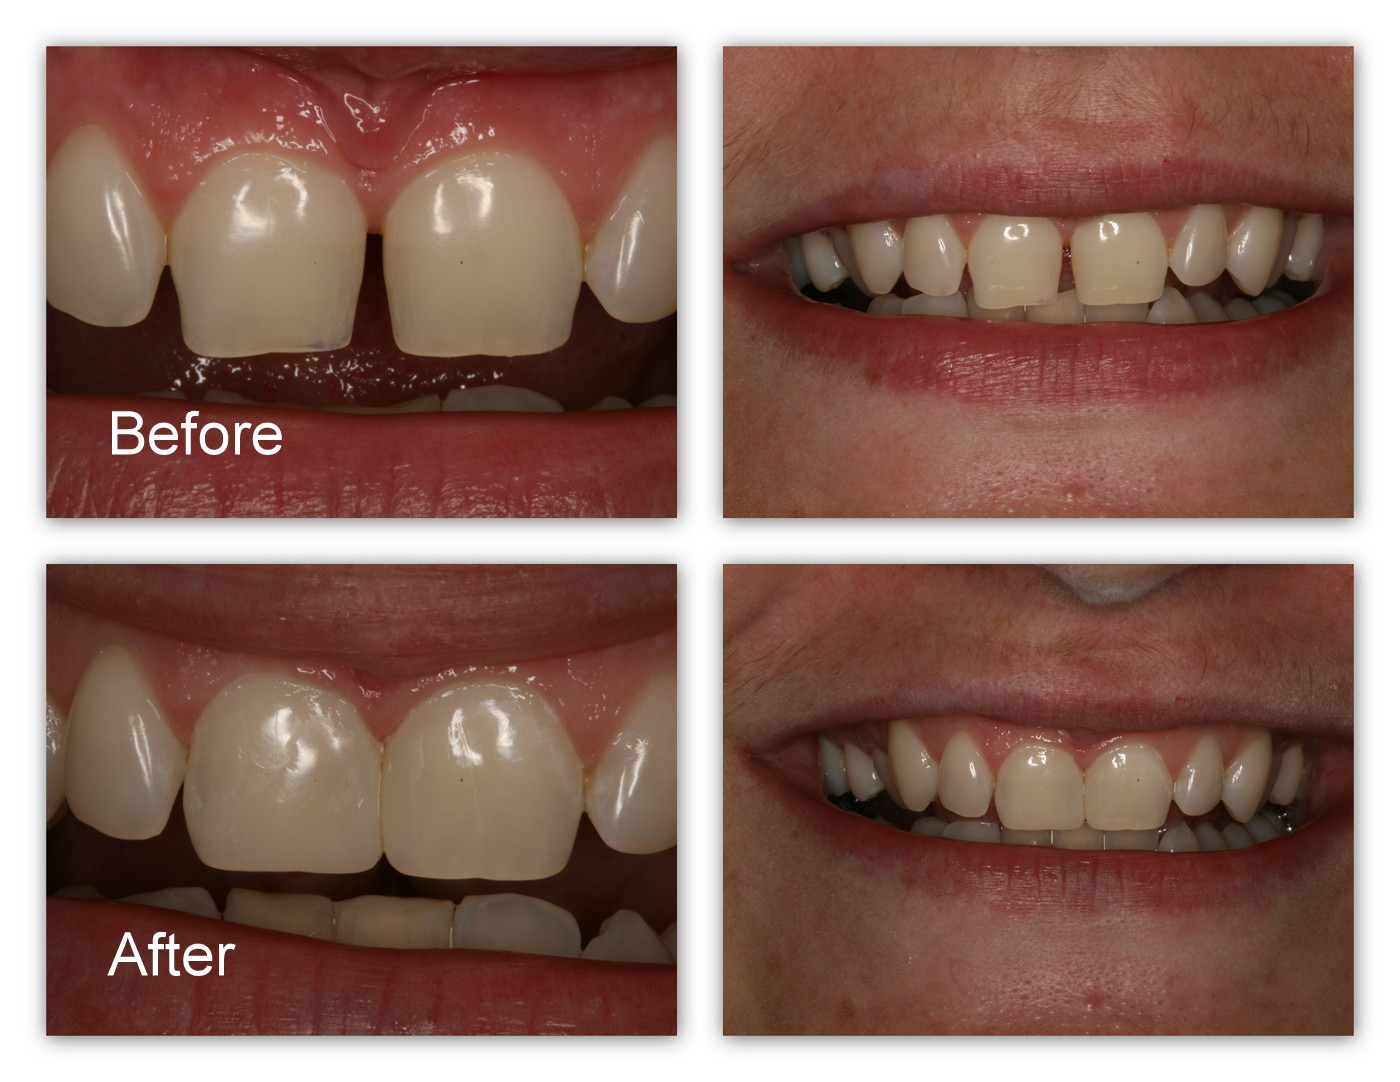 Before- This patient didn't like the shapes of her two front teeth or the space between them. After- Dr. Jack Hosner of Portage, MI bonded tooth colored material to reshape the teeth and close the gaps.